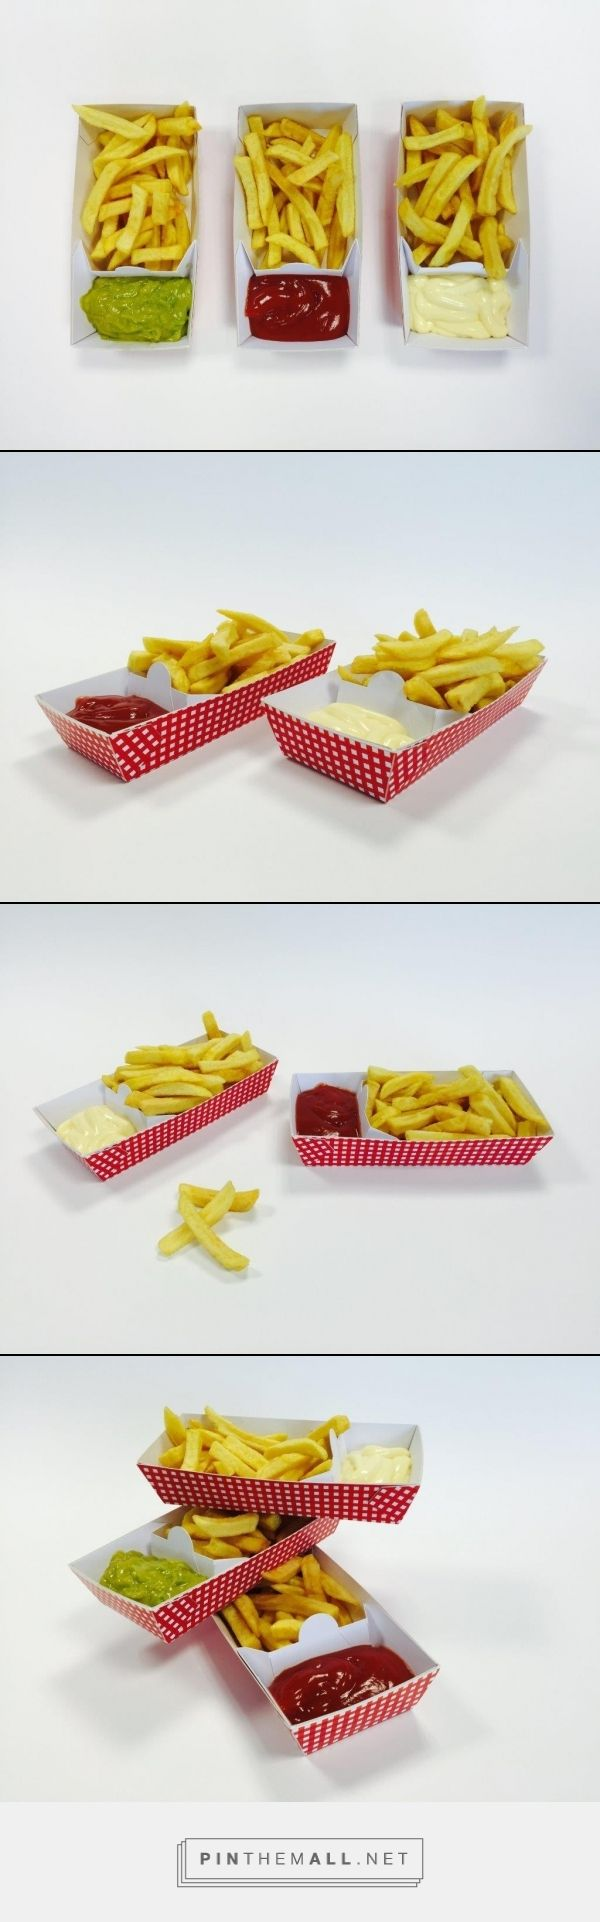 Patented snack tray packaging by Remmert Dekker, Netherlands... - a grouped images picture - Pin Them All